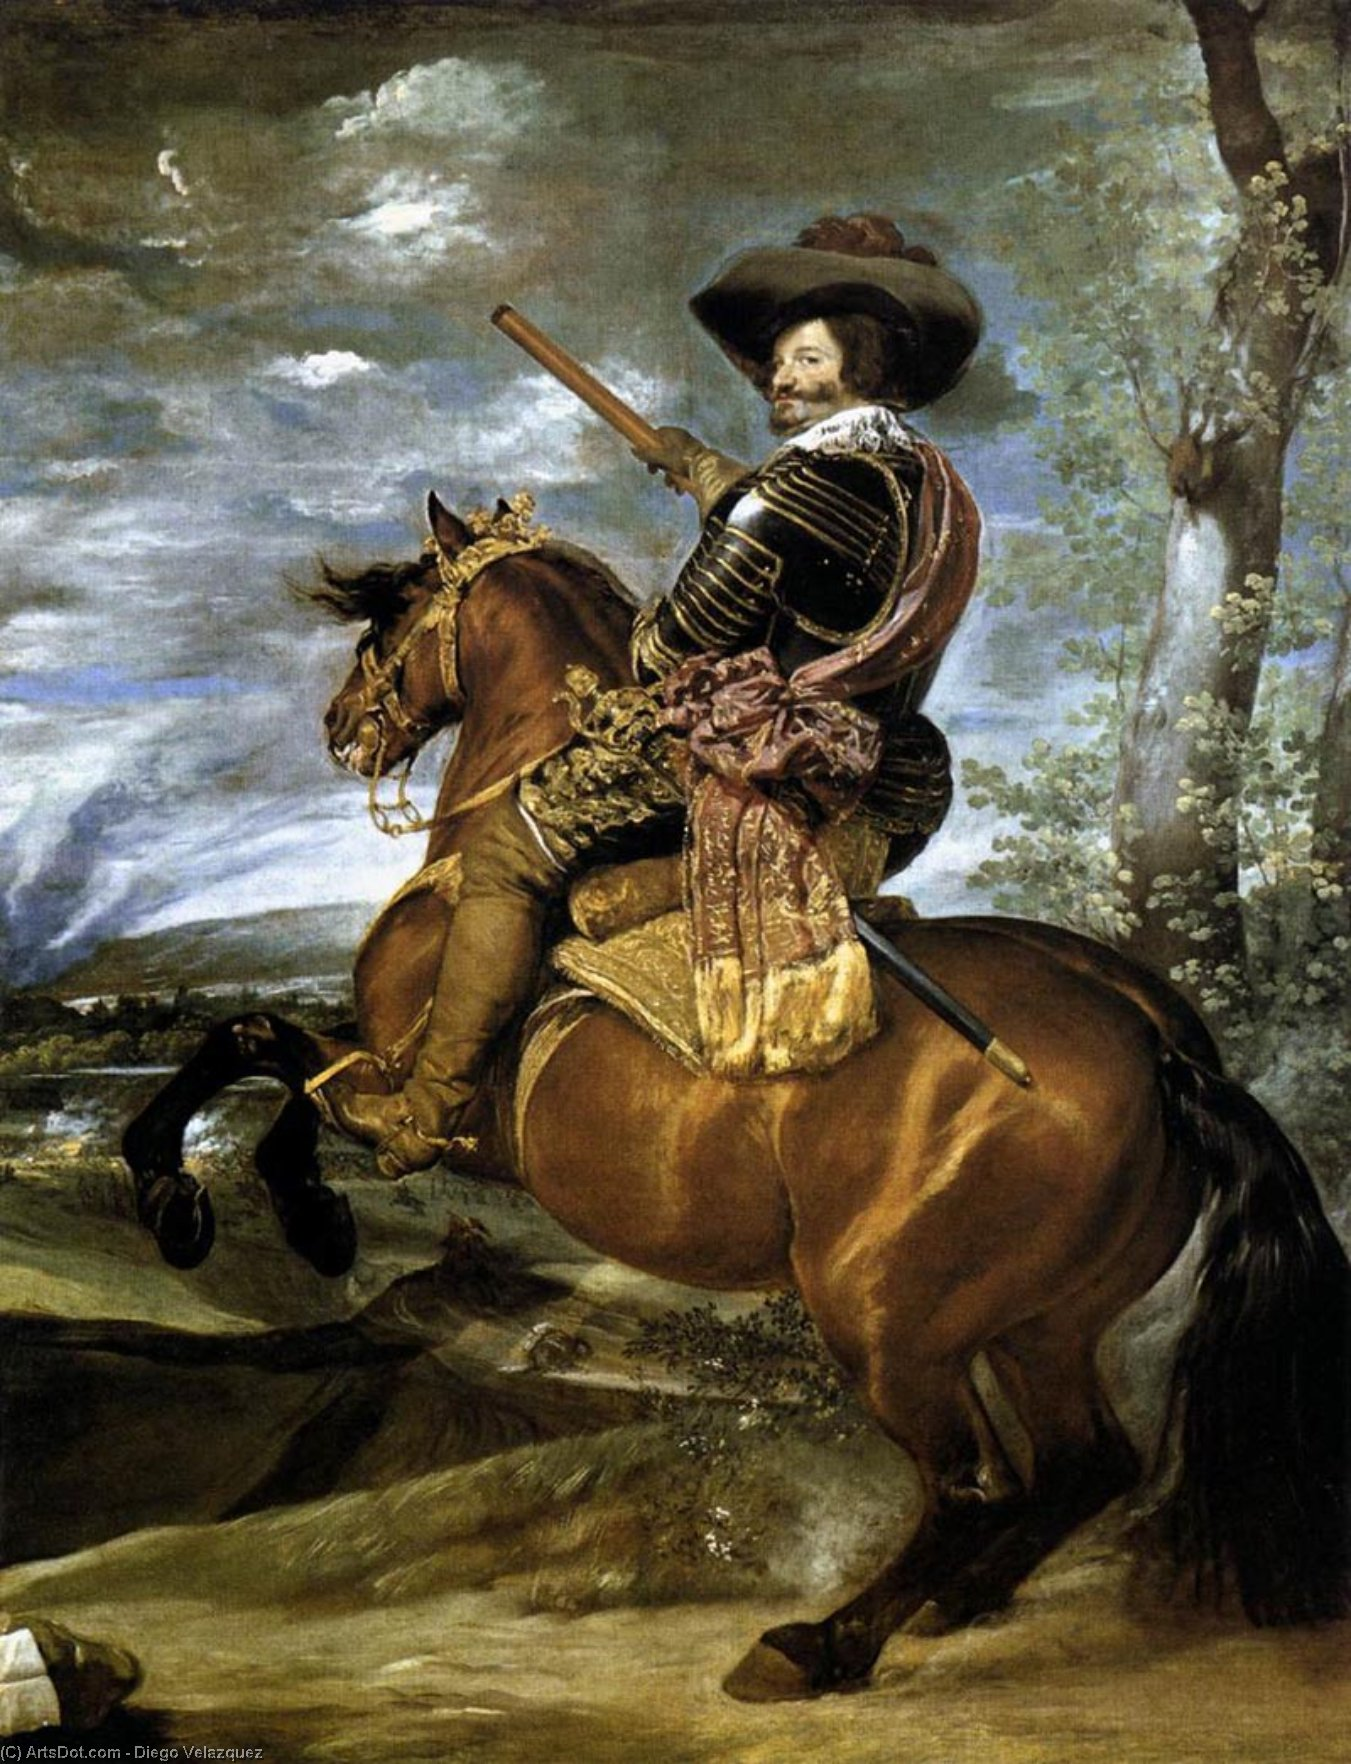 The Count-Duke of Olivares on Horseback, Oil On Canvas by Diego Velazquez (1599-1660, Spain)